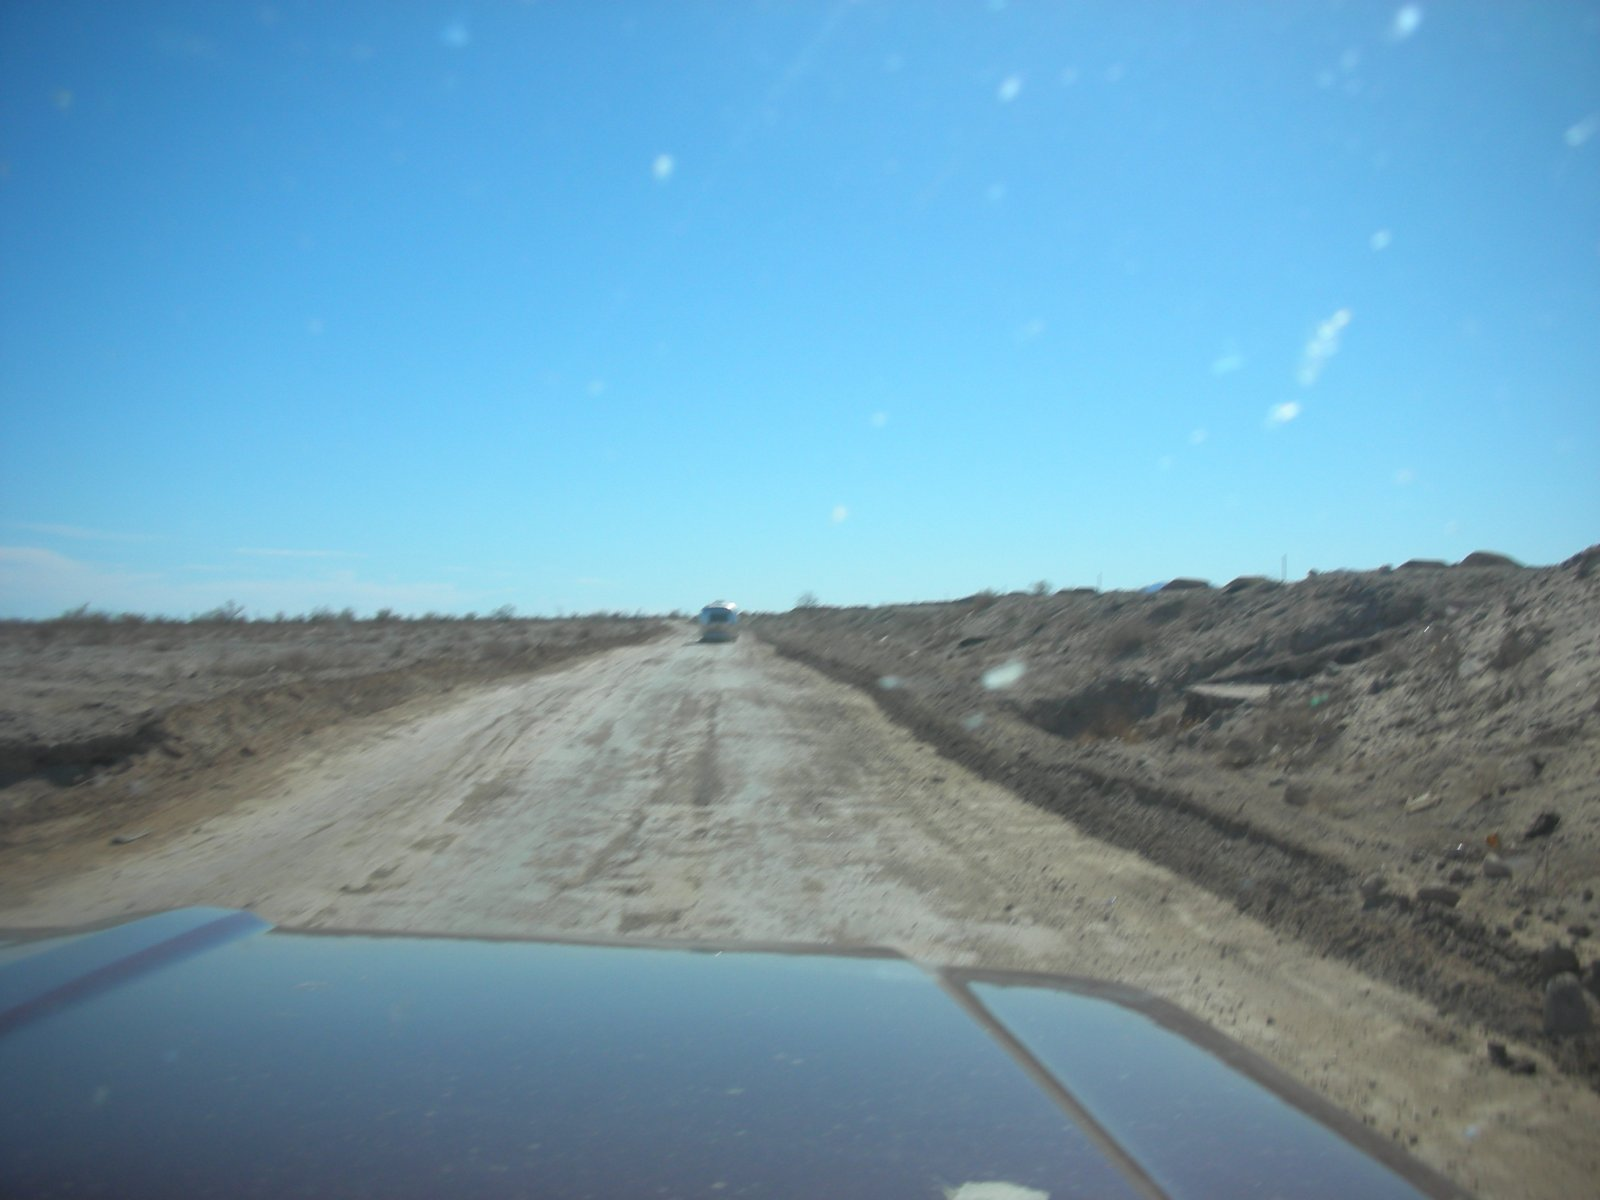 Click image for larger version  Name:Mexico offroad.jpg Views:87 Size:150.2 KB ID:93905